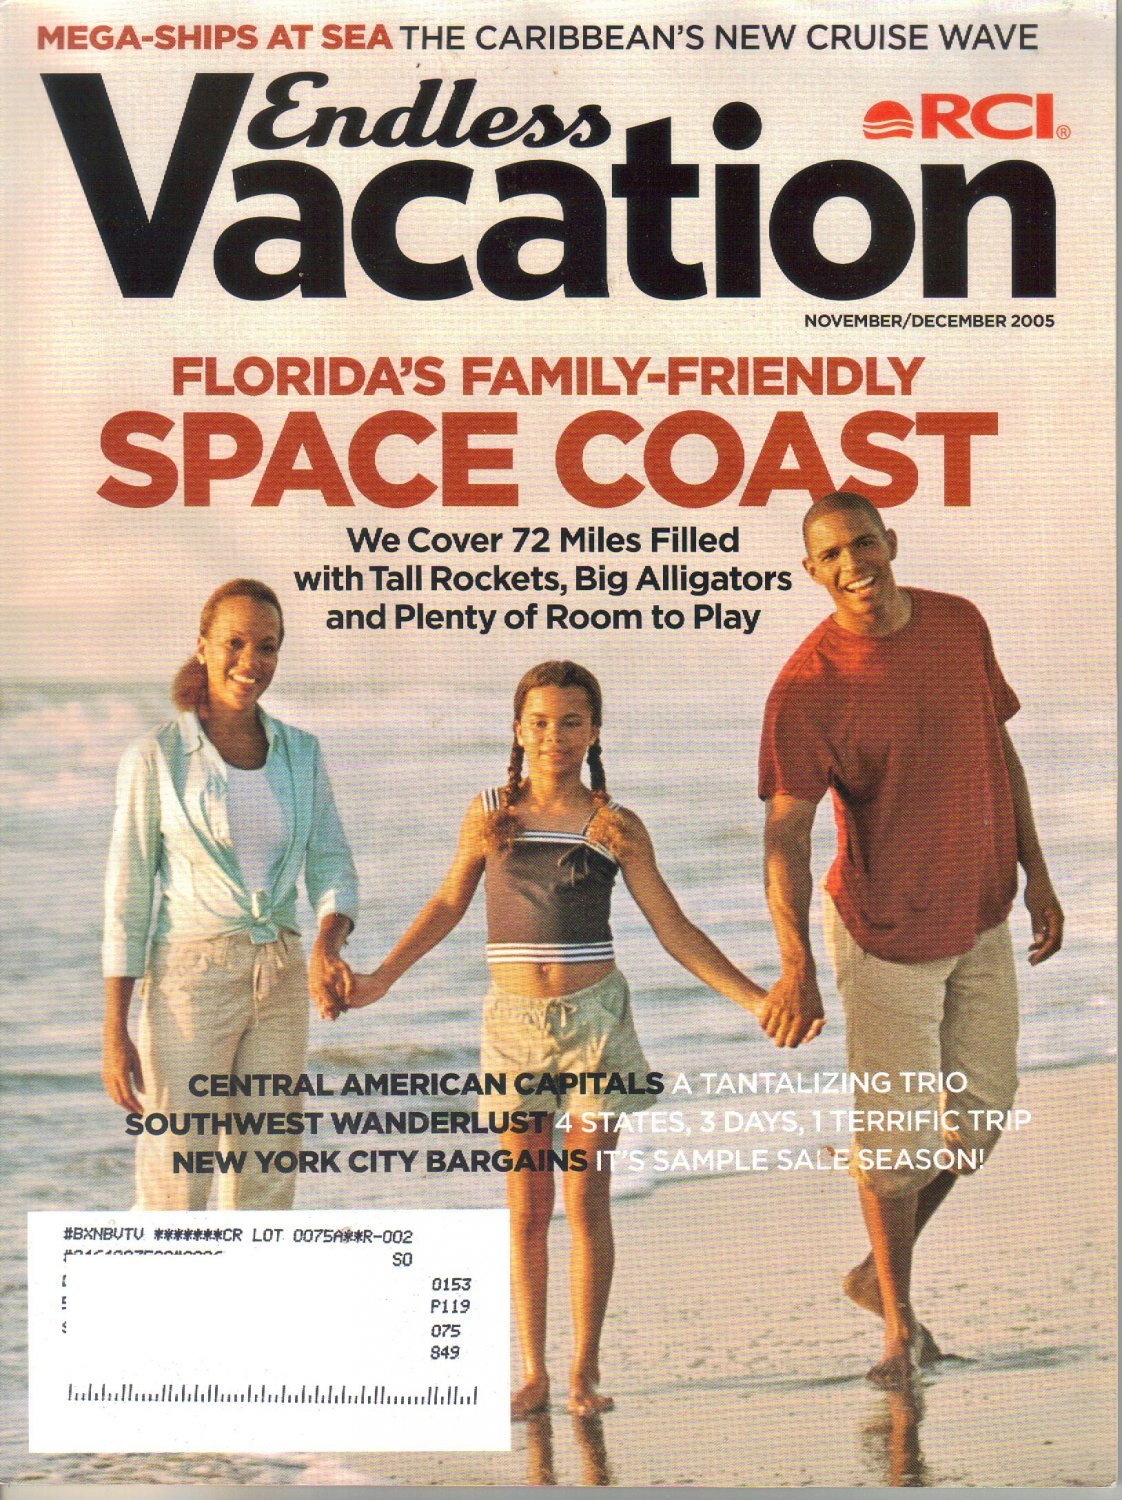 RCI Endless Vacation Magazine November December-Florida ...